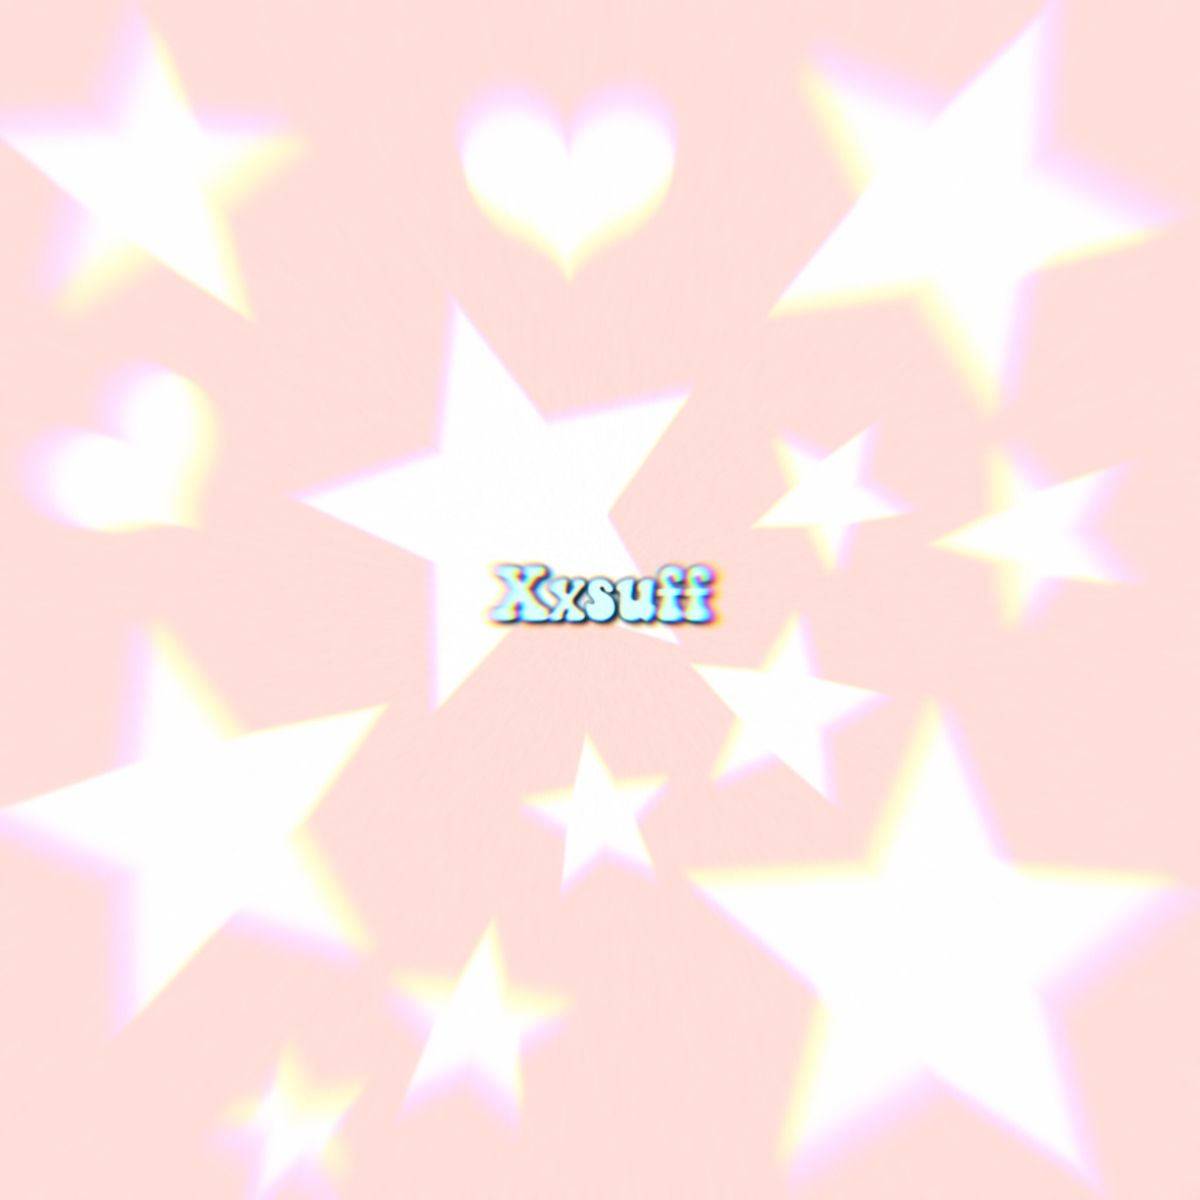 Aesthetic Username 1 For Intros And Outros Or For Fun Aesthetic Usernames Aesthetic Fun